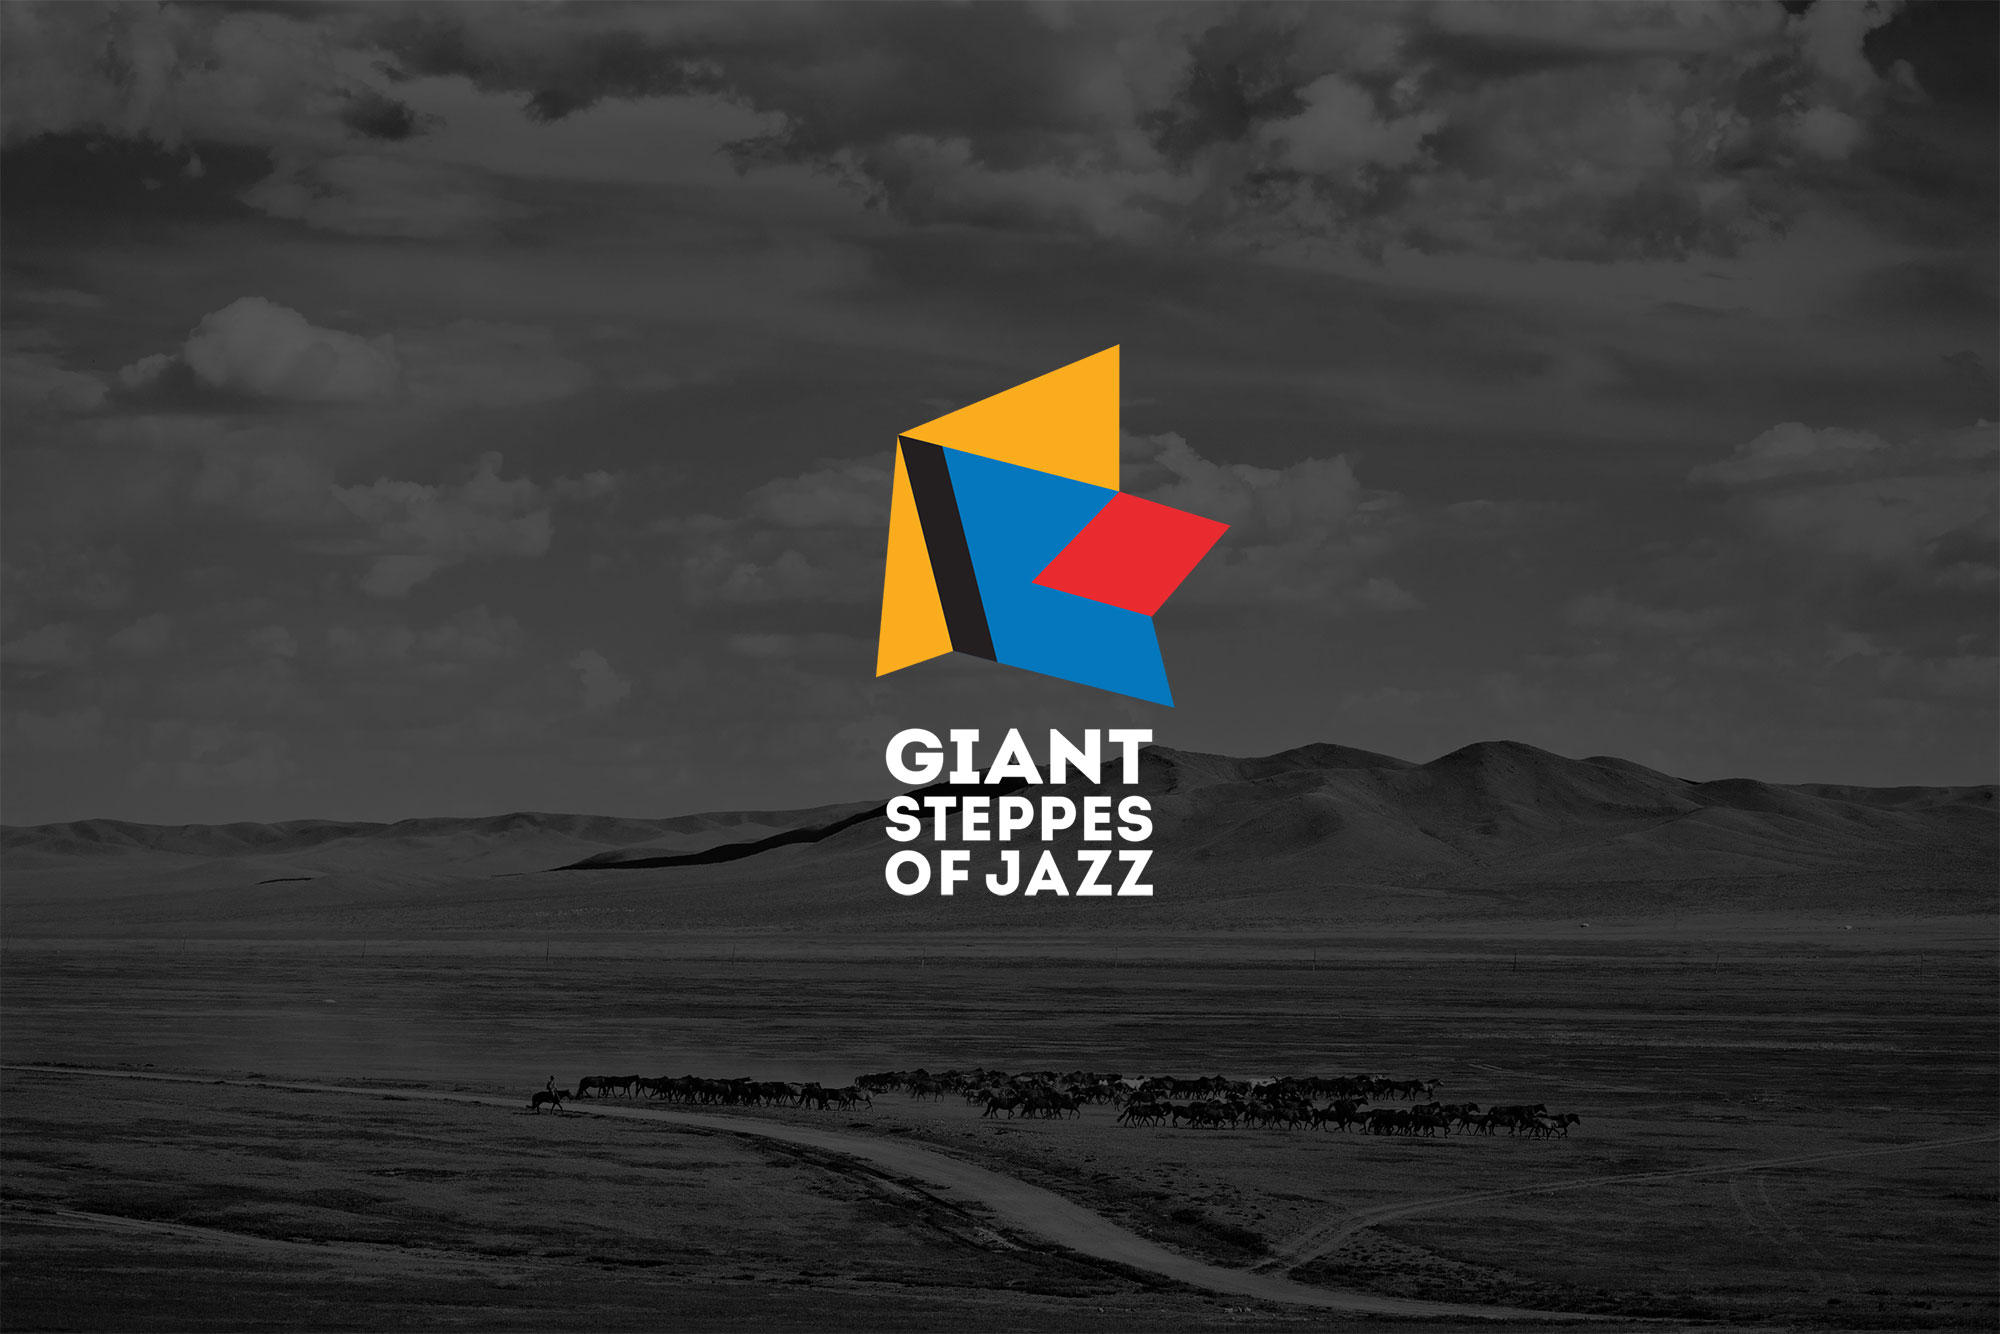 quentin_paquignon-branding-visual_identity-giant-steppes-of-jazz_01.jpg